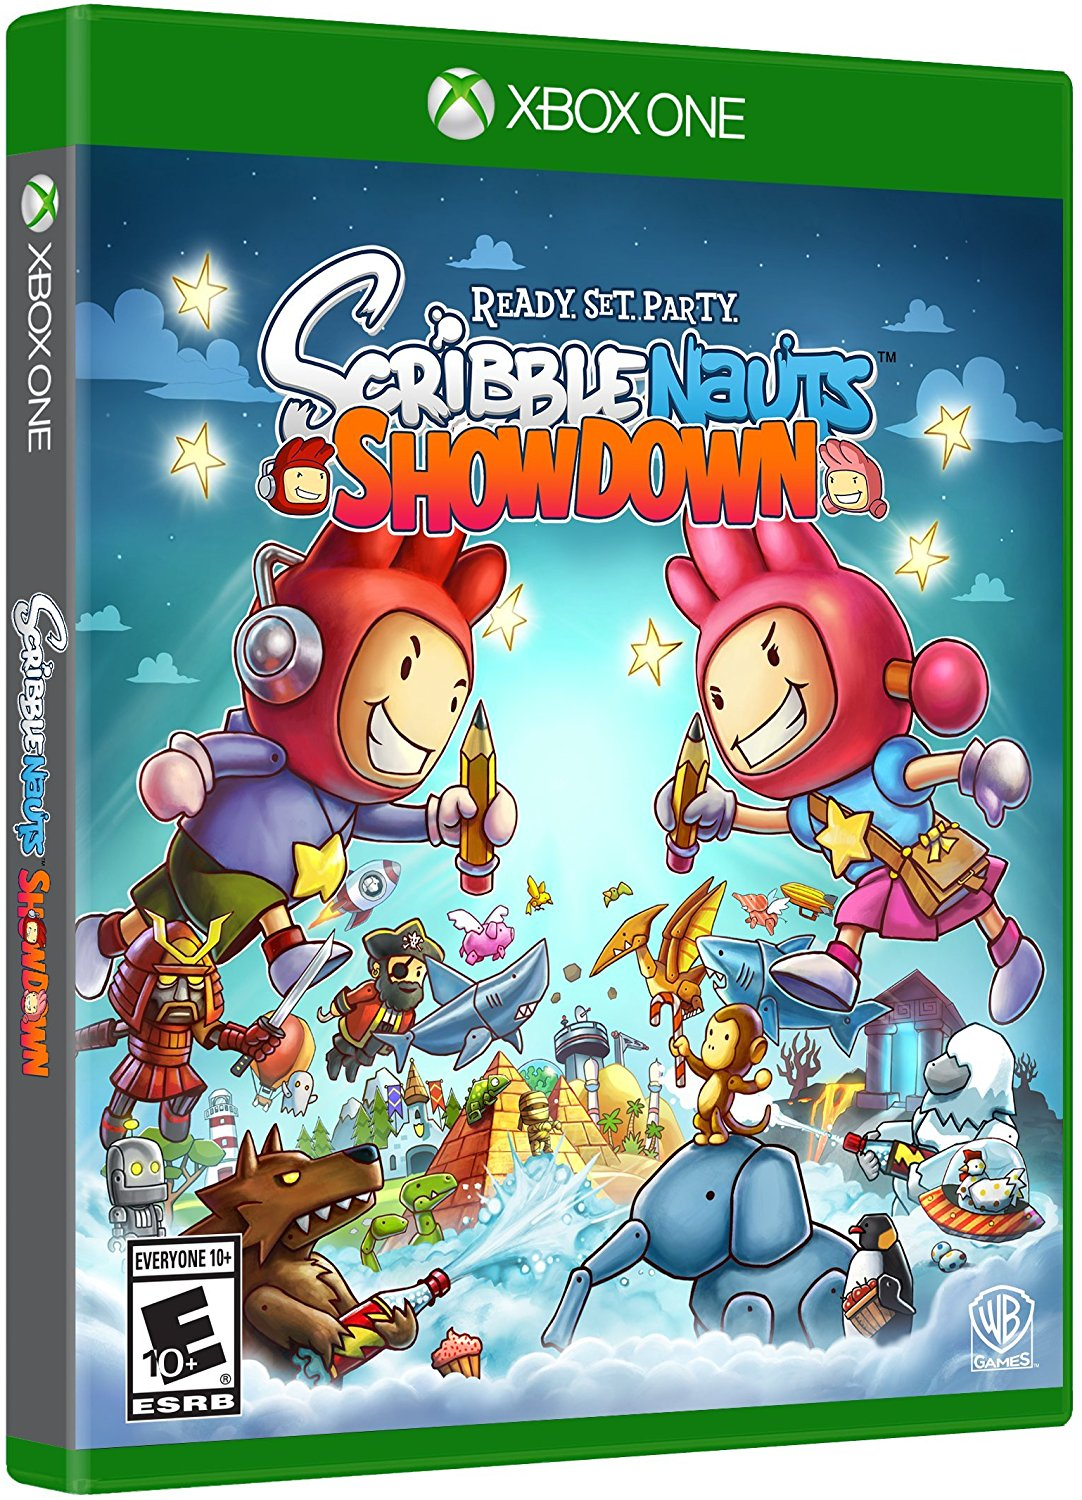 Scribblenauts Showdown - Xbox One - - $19.99 - $20 off or 50%